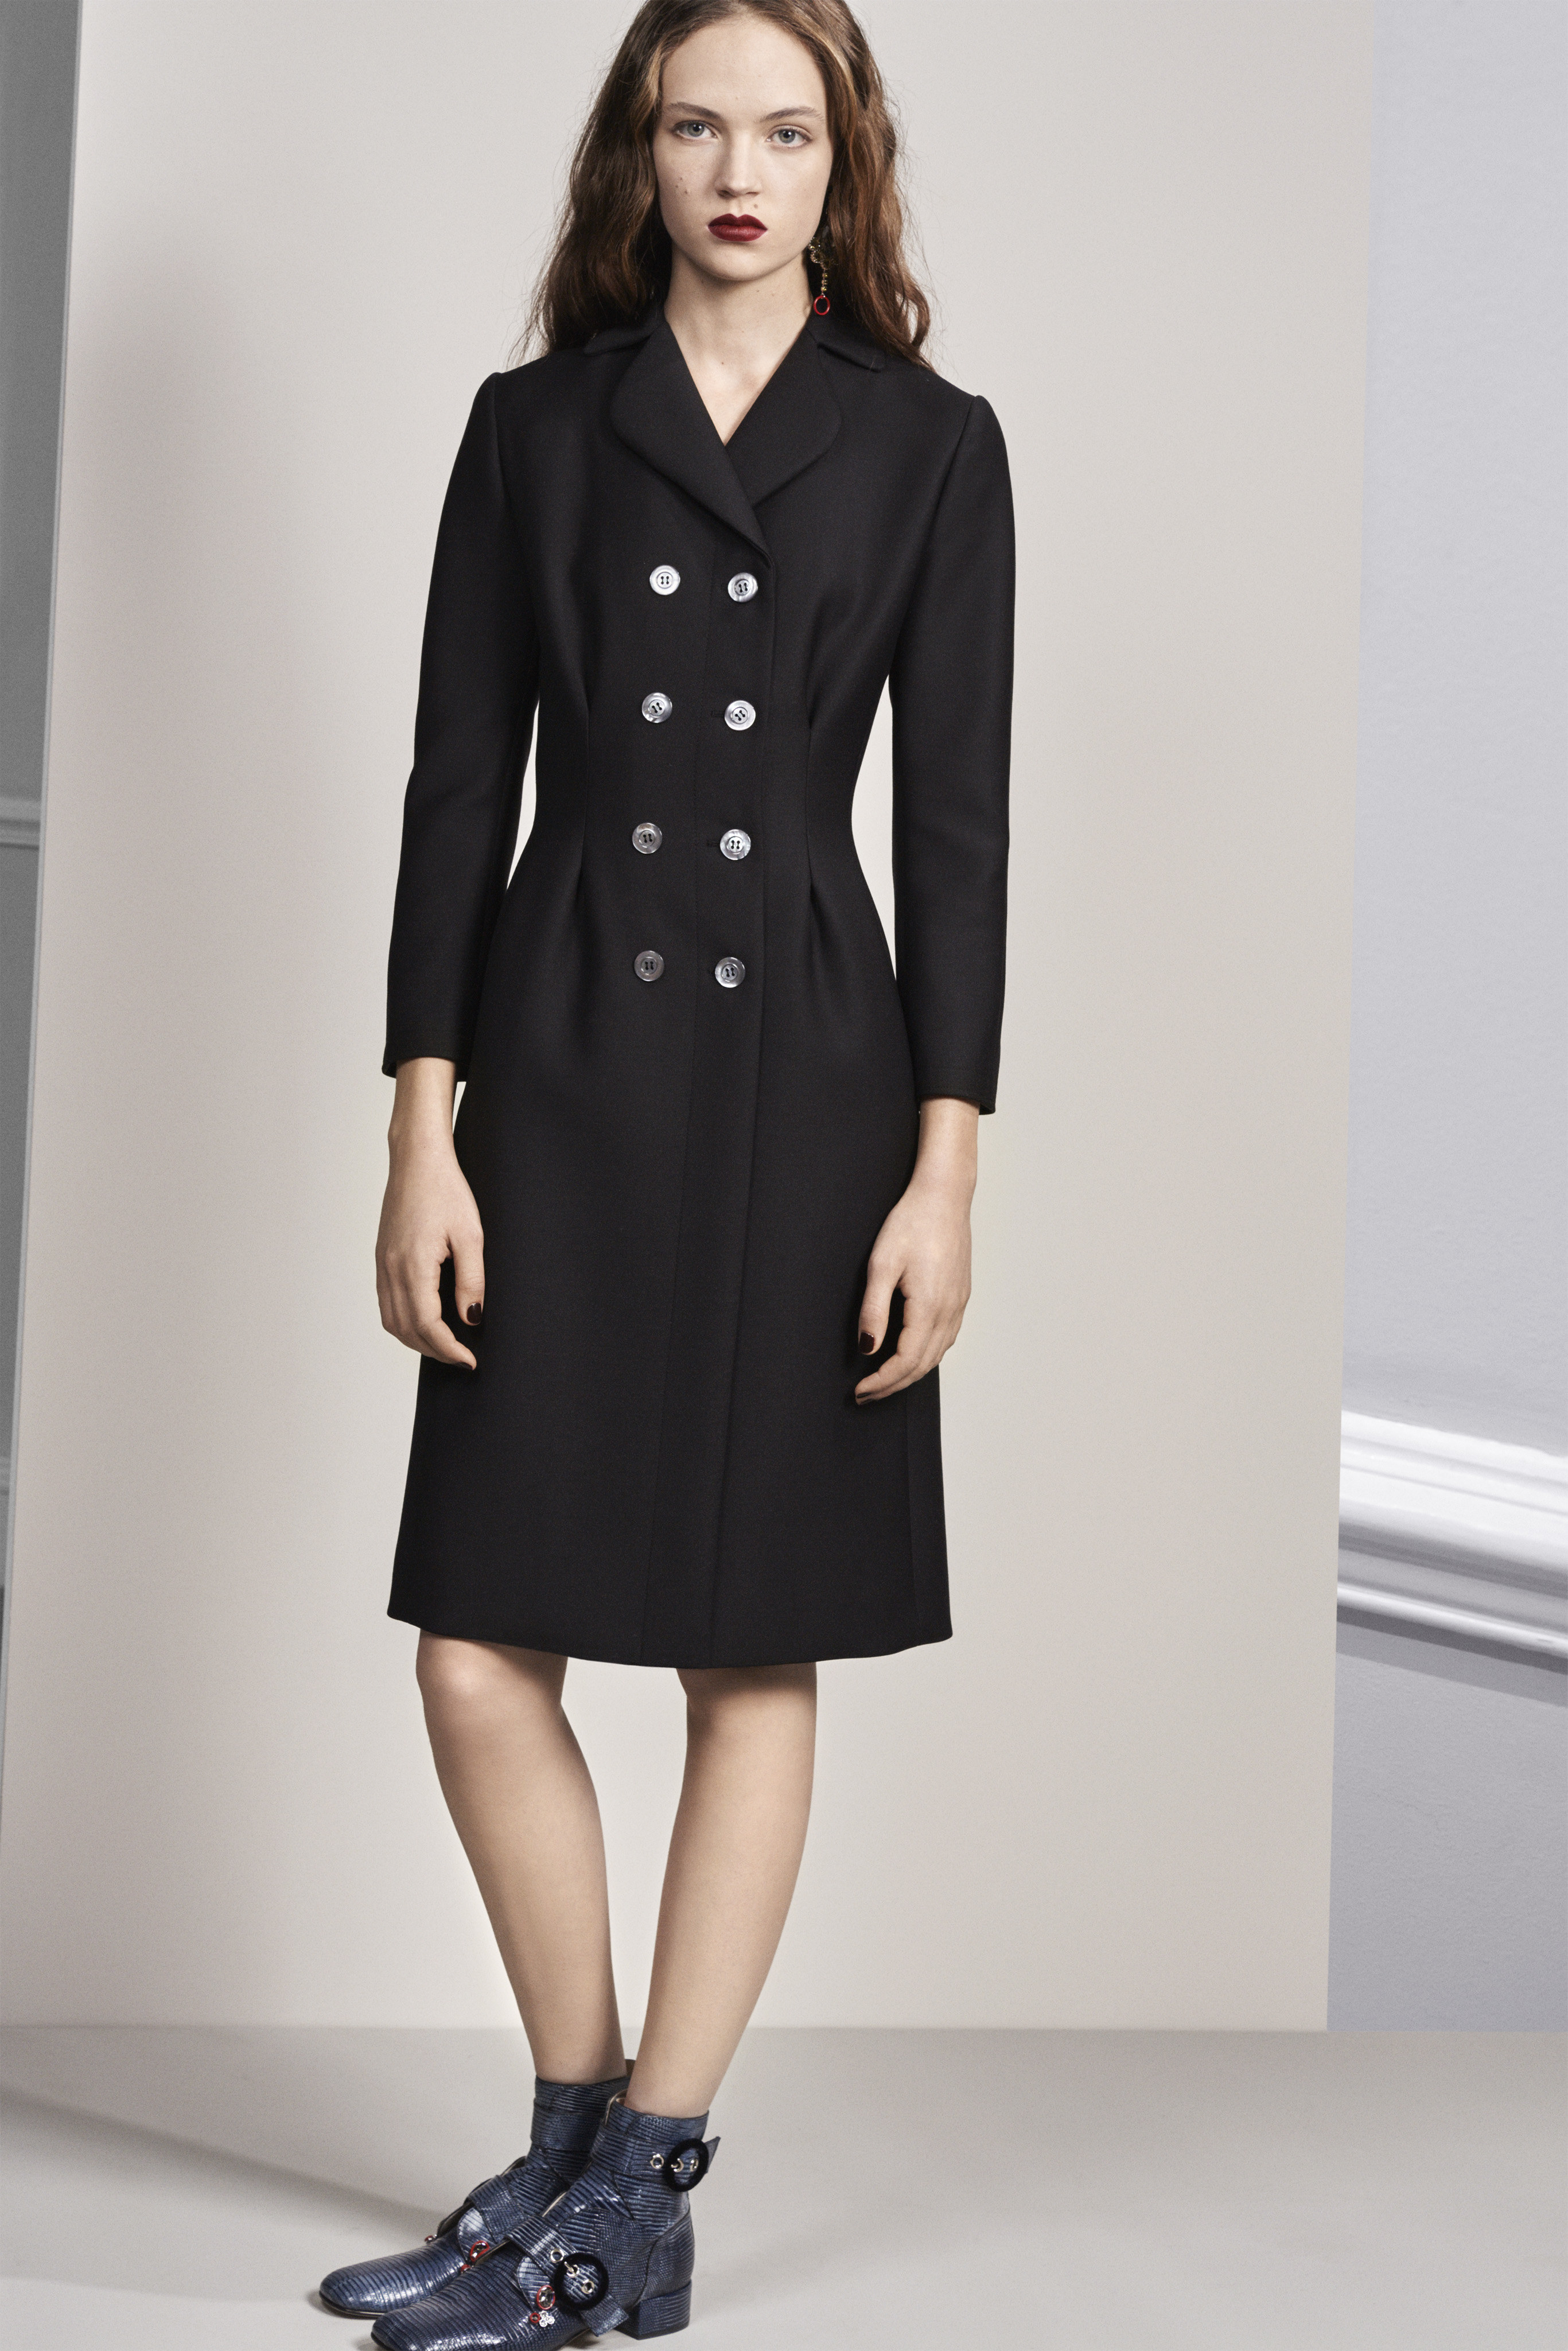 Christian Dior Pre-Fall 2016 Collection